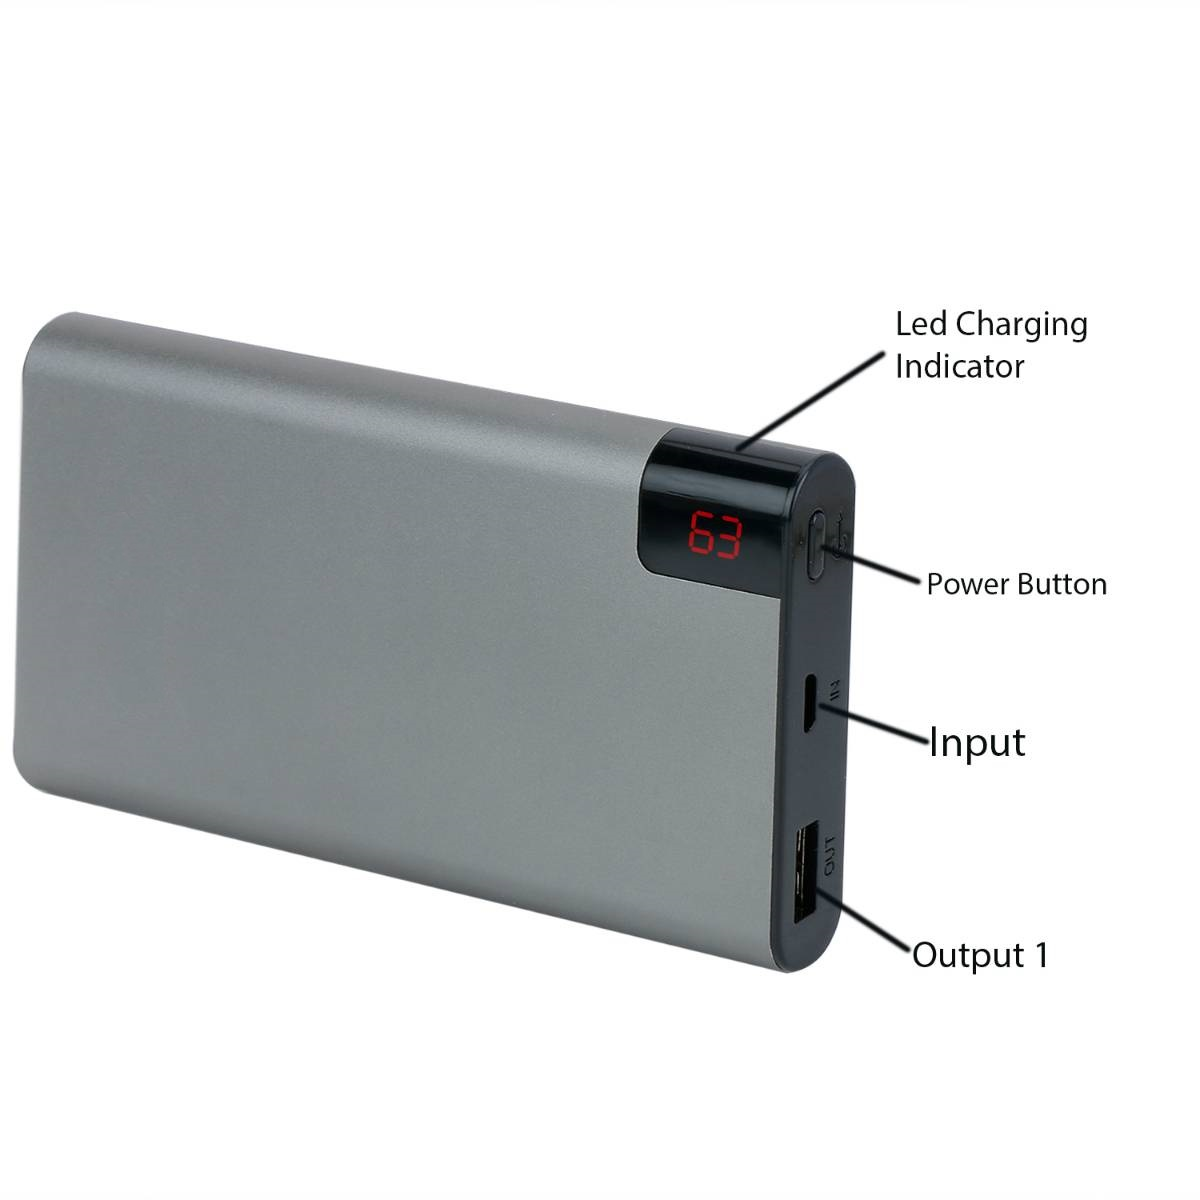 HOBINS 30000 Power Banks P082 Grey